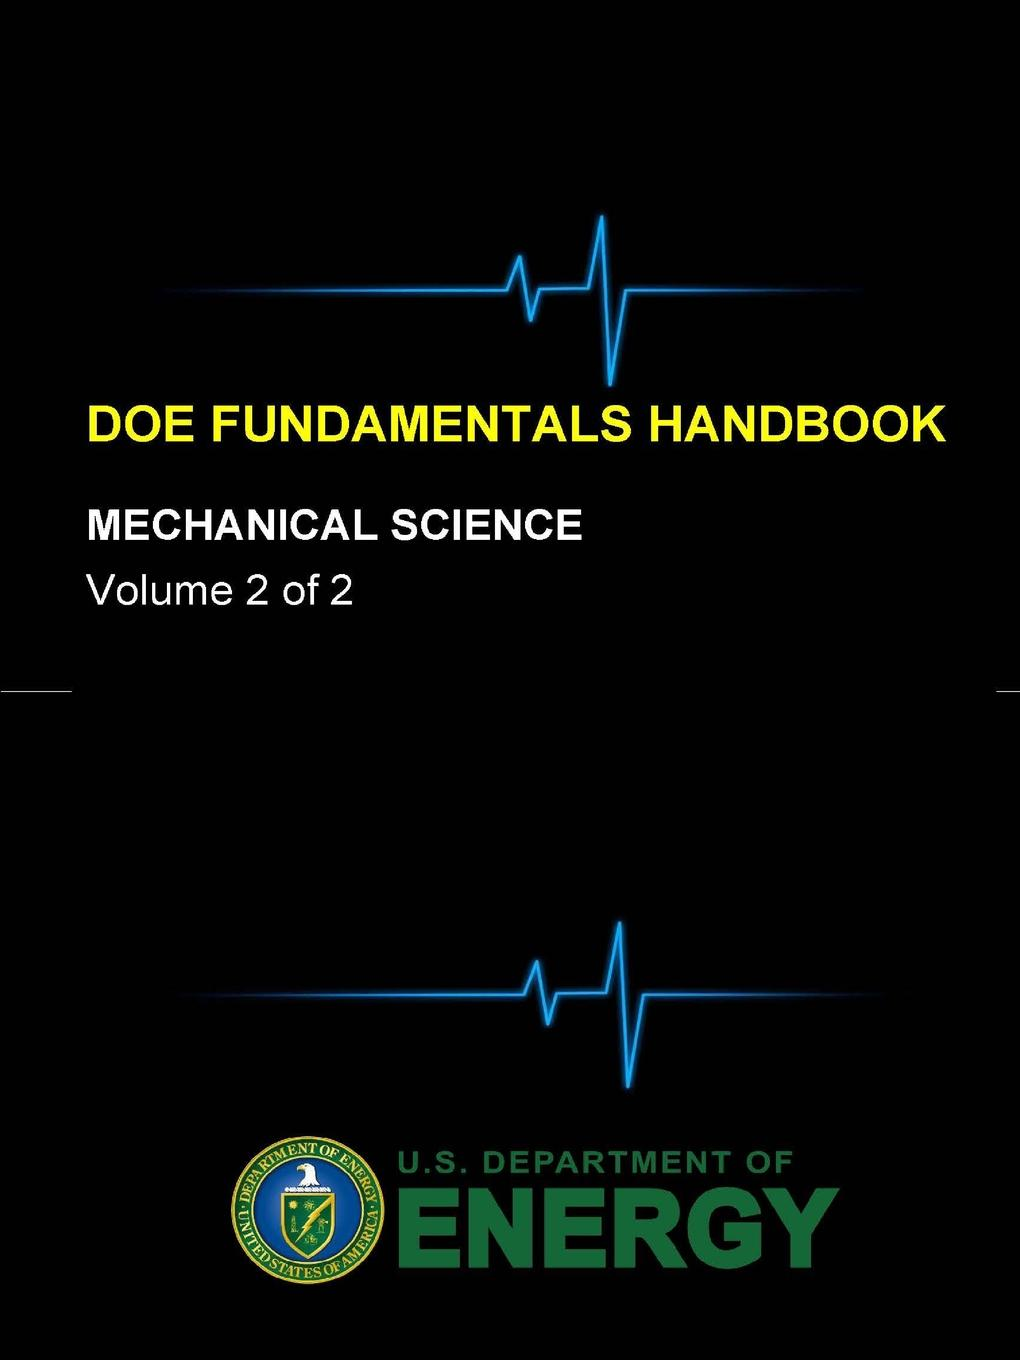 U.S. Department of Energy DOE Fundamentals Handbook - Mechanical Science (Volume 2 of 2) myer kutz mechanical engineers handbook volume 2 design instrumentation and controls